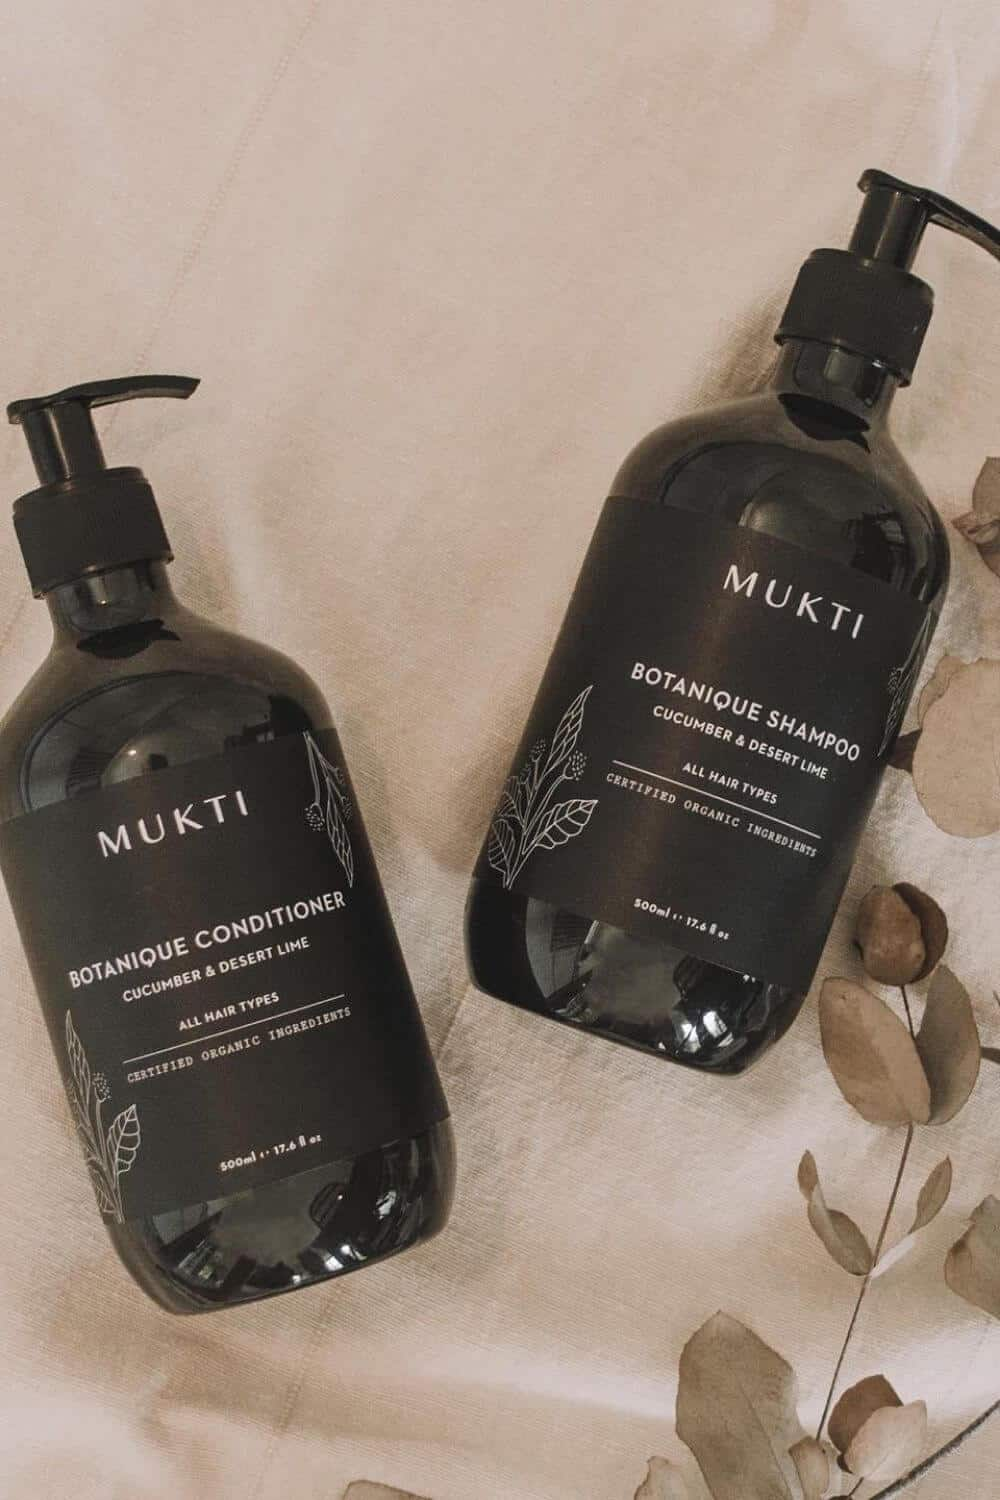 Whether you have dry or oily hair (or anything in between) there are environmentally friendly shampoo and conditioner brands on here that will do the trick, without leaving a stain on your conscience. Image by Mukti #ecofriendlyshampooandconditioner #sustainablejungle